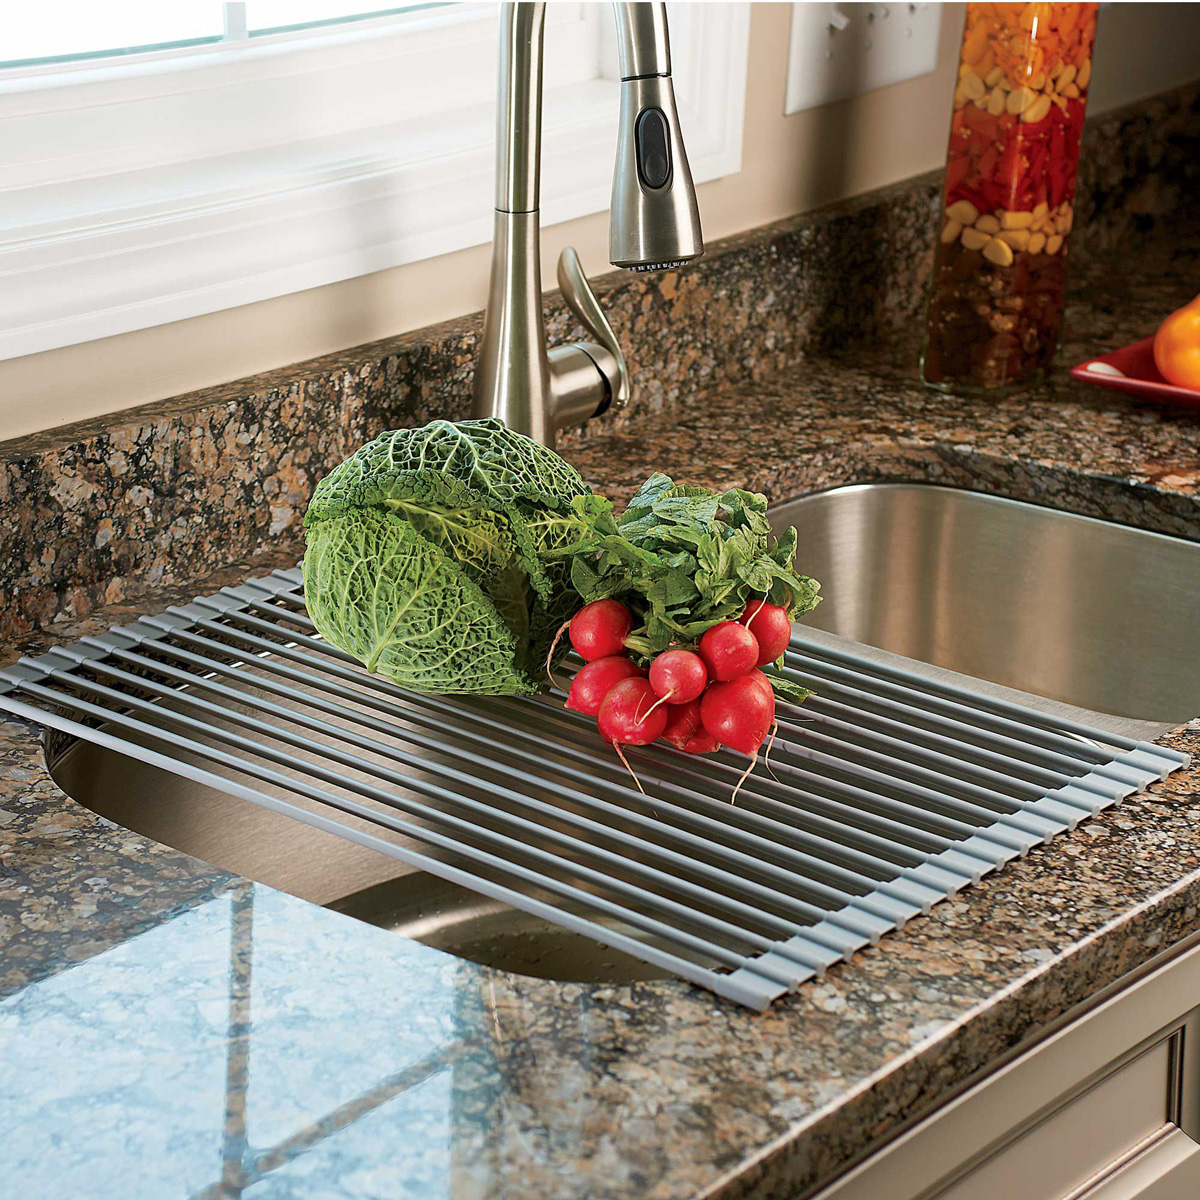 Over The Sink Roll Up Drying Rack Colander The Green Head